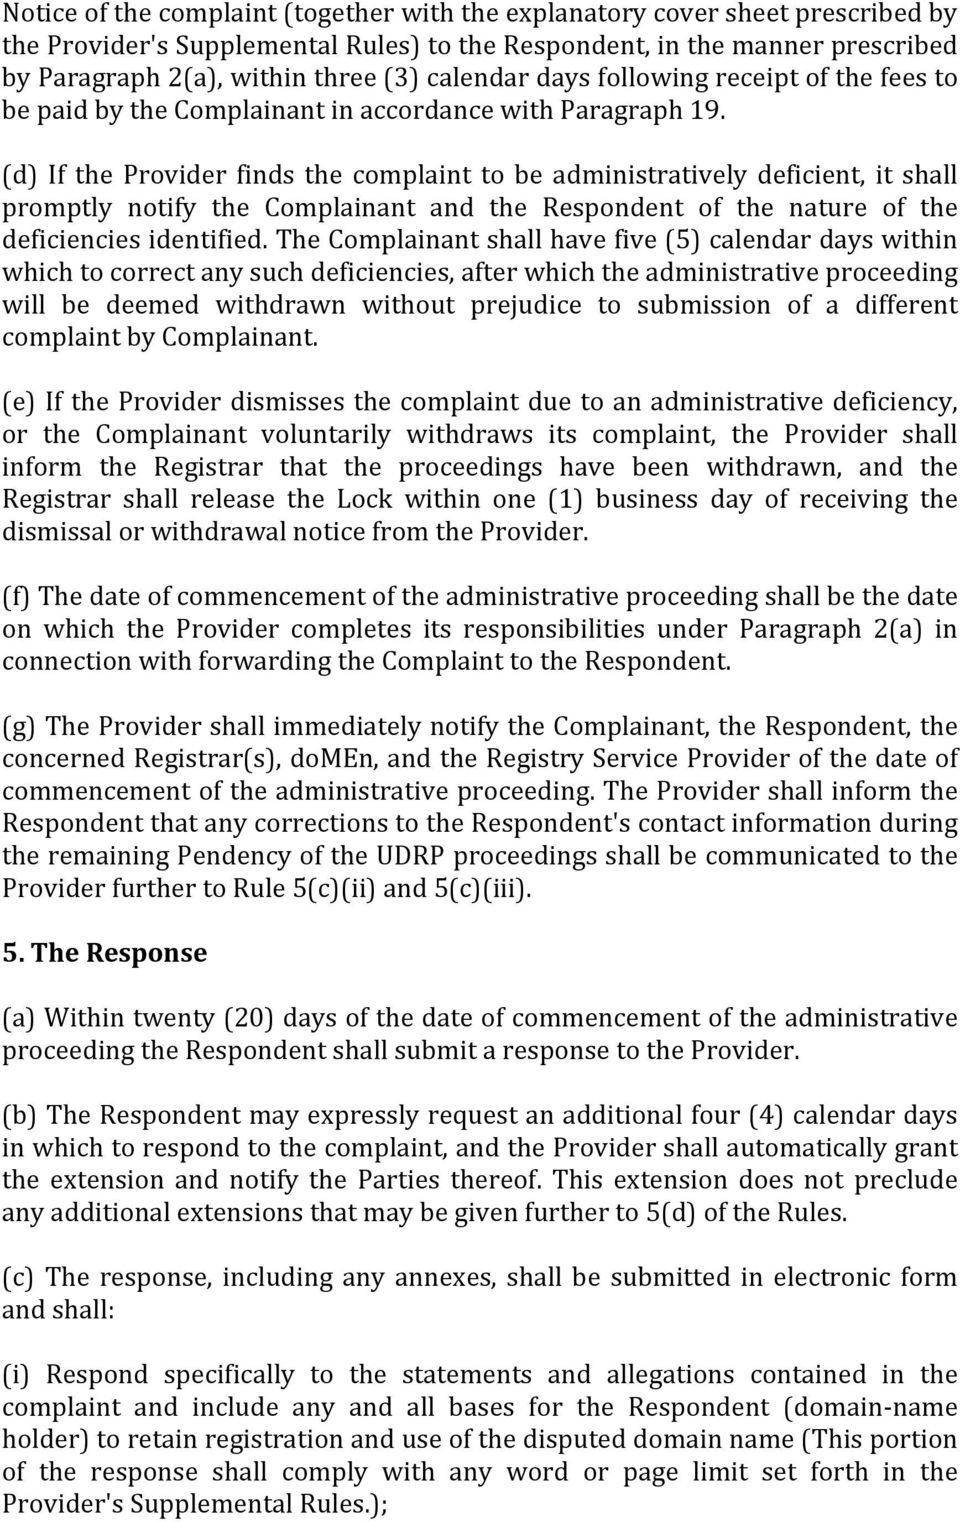 (d) If the Provider finds the complaint to be administratively deficient, it shall promptly notify the Complainant and the Respondent of the nature of the deficiencies identified.